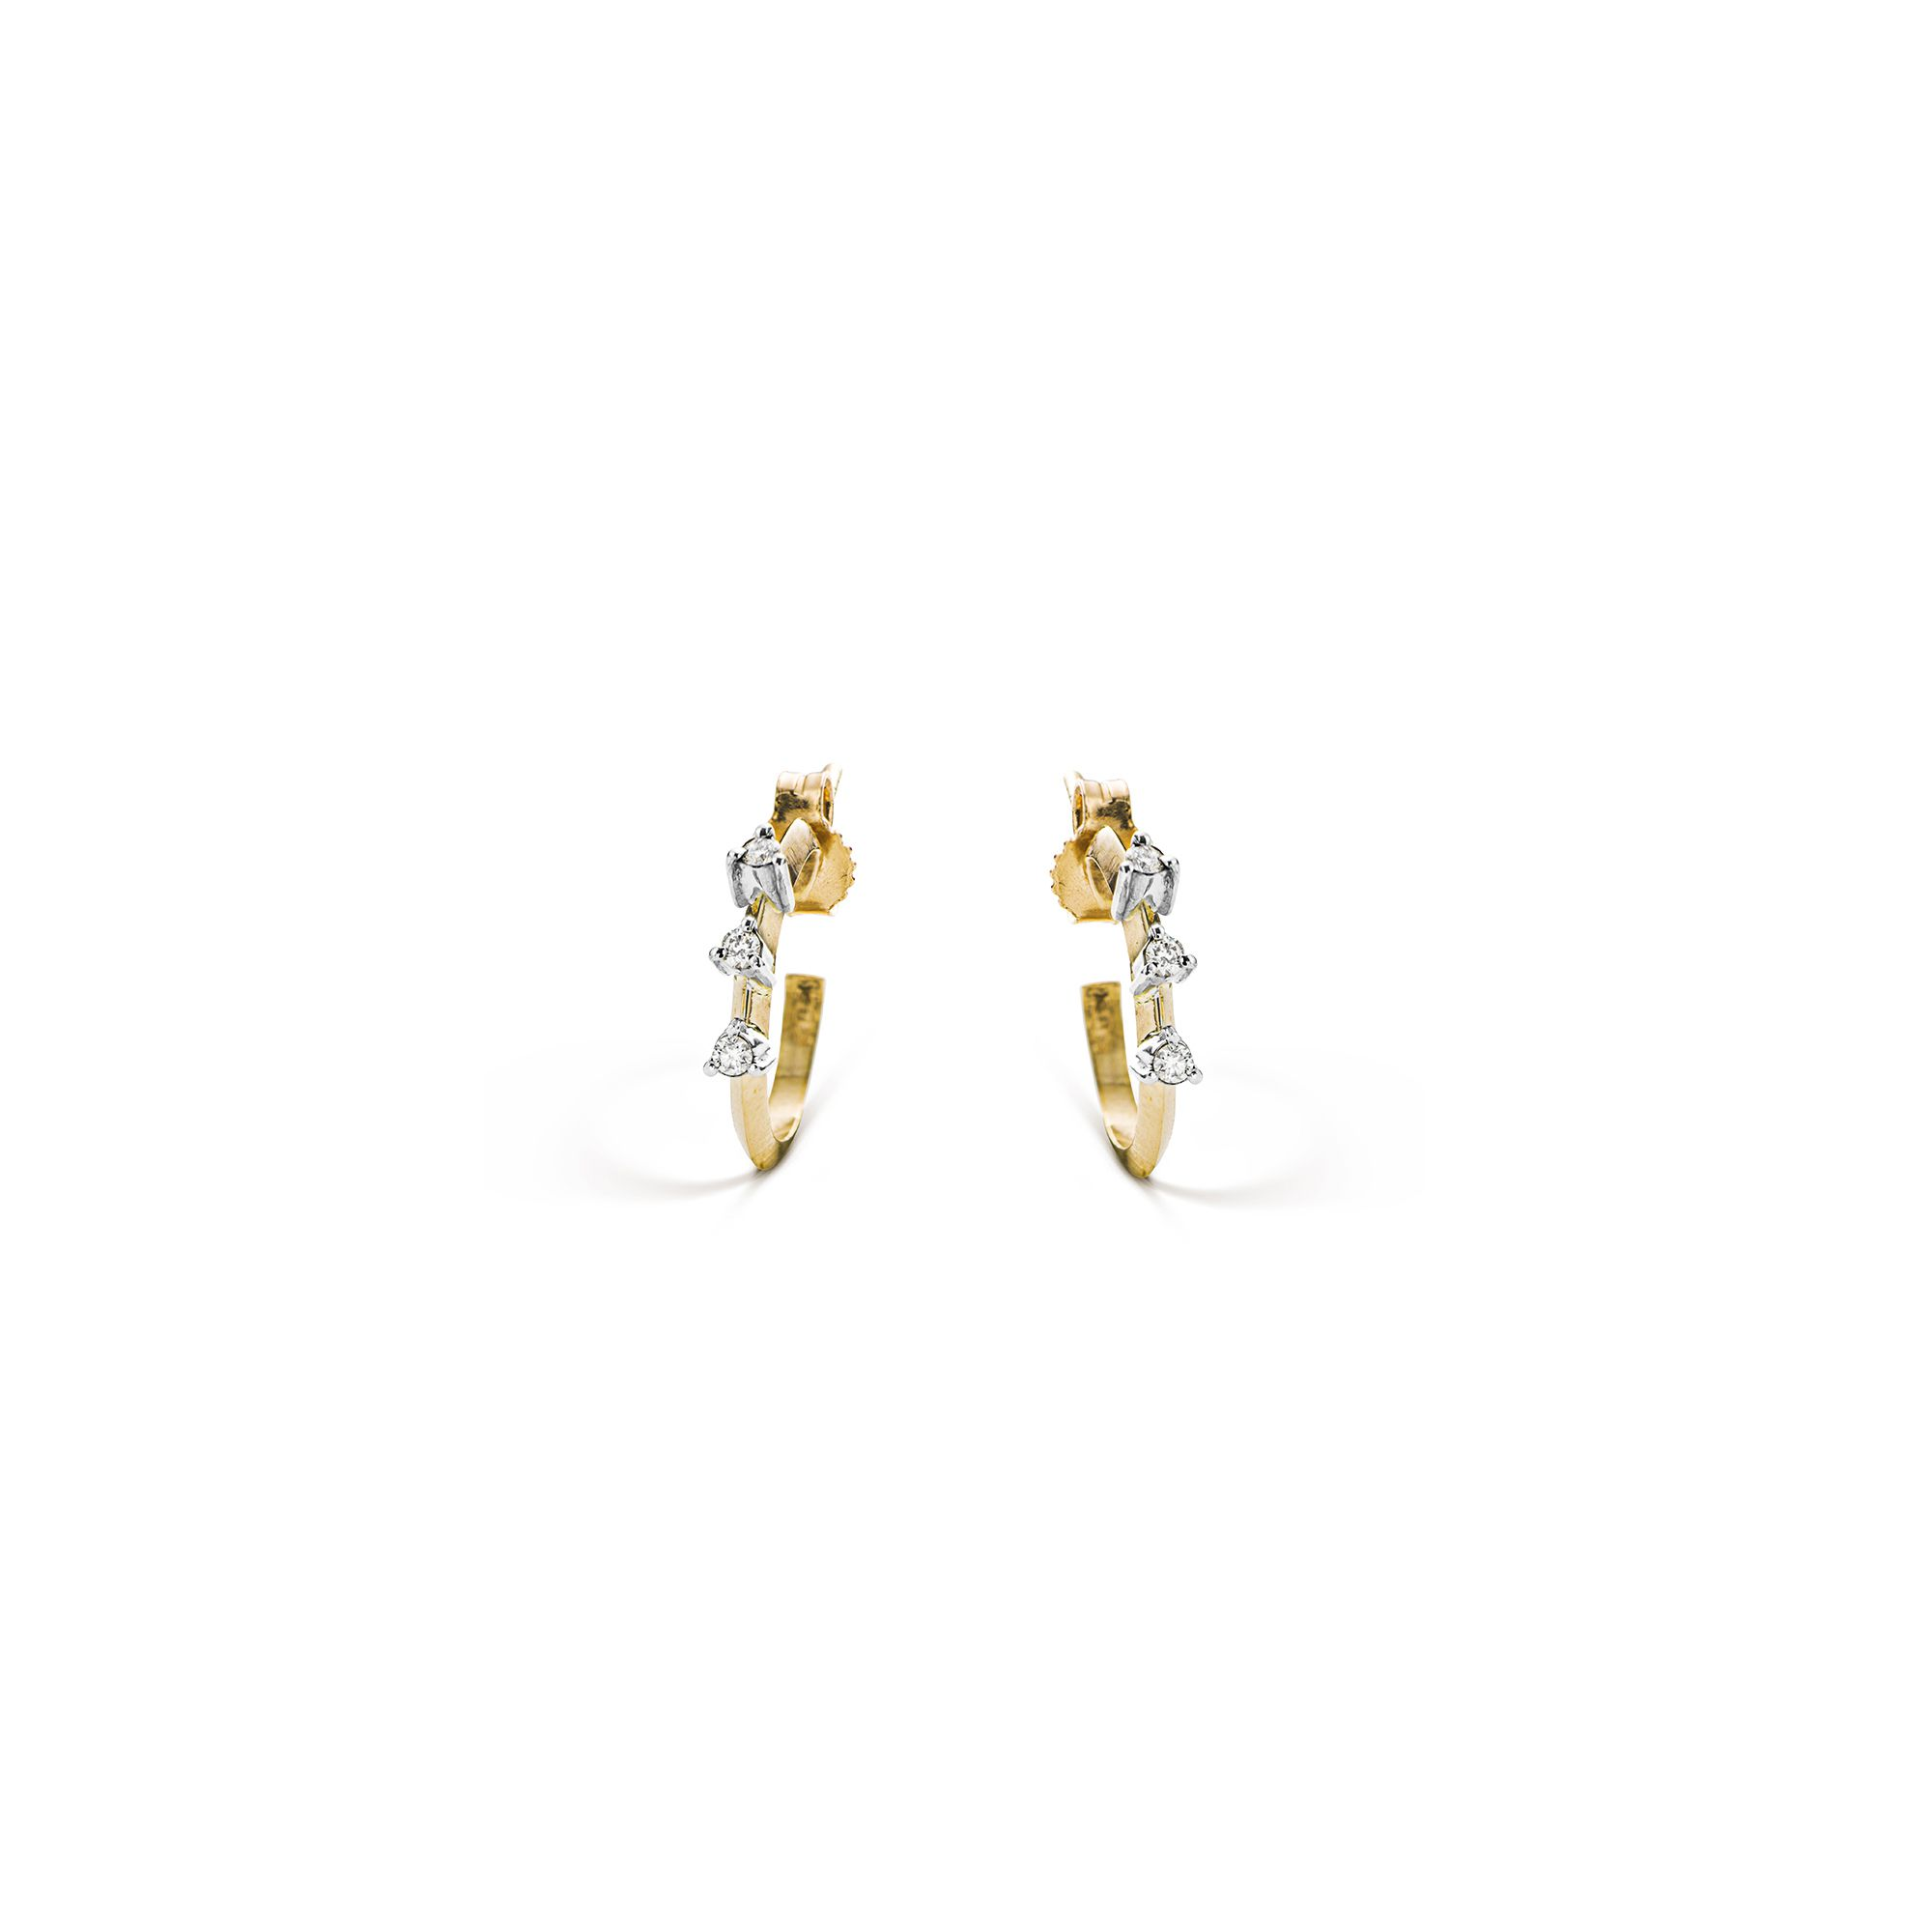 Yellow gold 'Balance' small hoop earrings Gold hoop earrings with diamonds